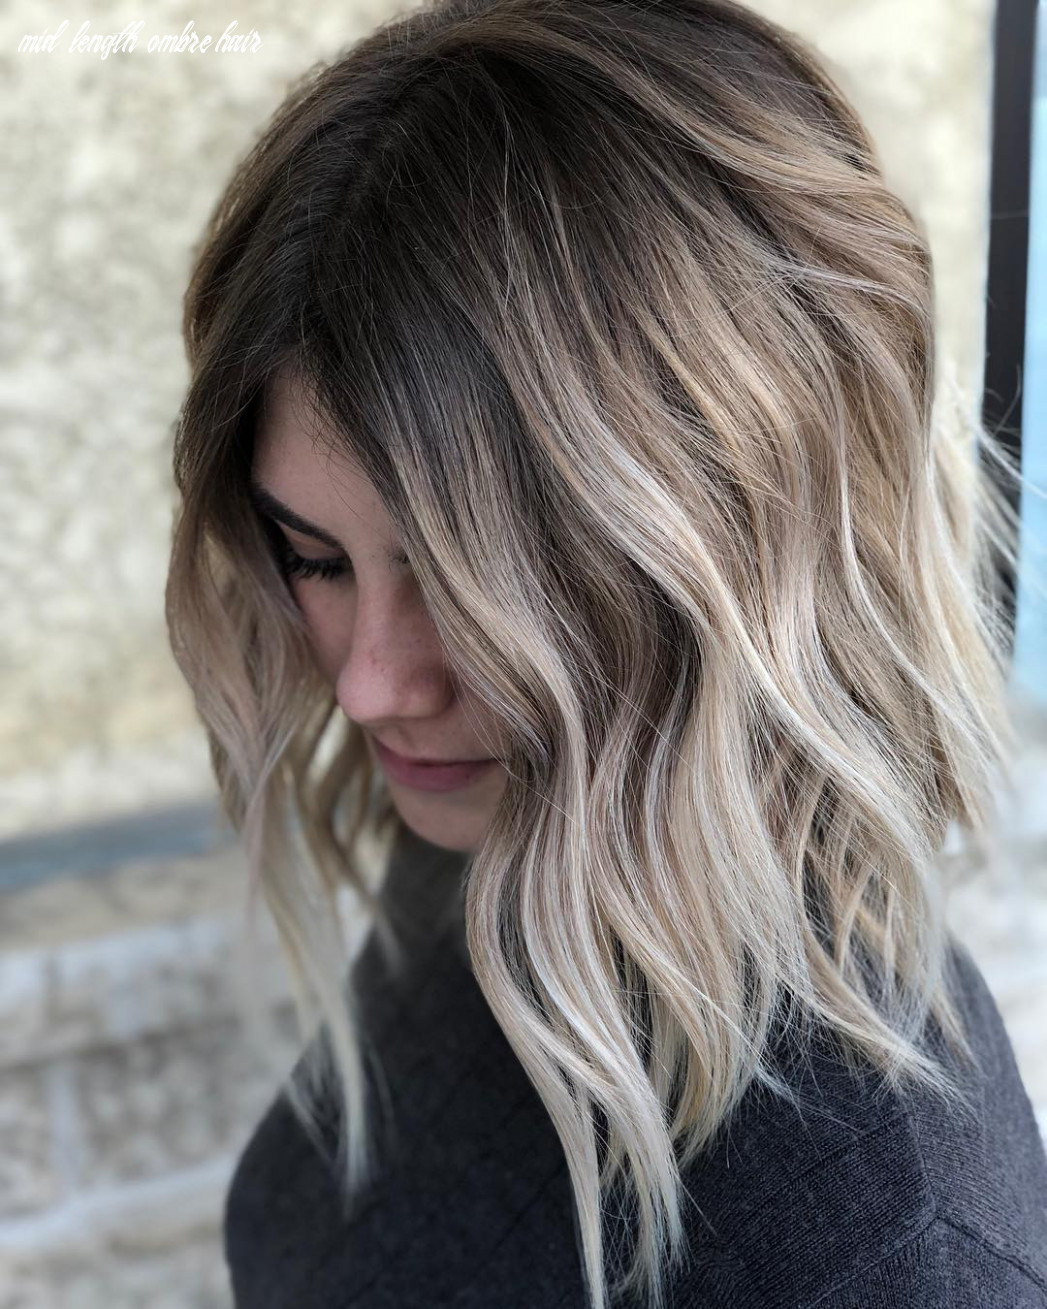 12 balayage ombre hair styles for shoulder length hair, women